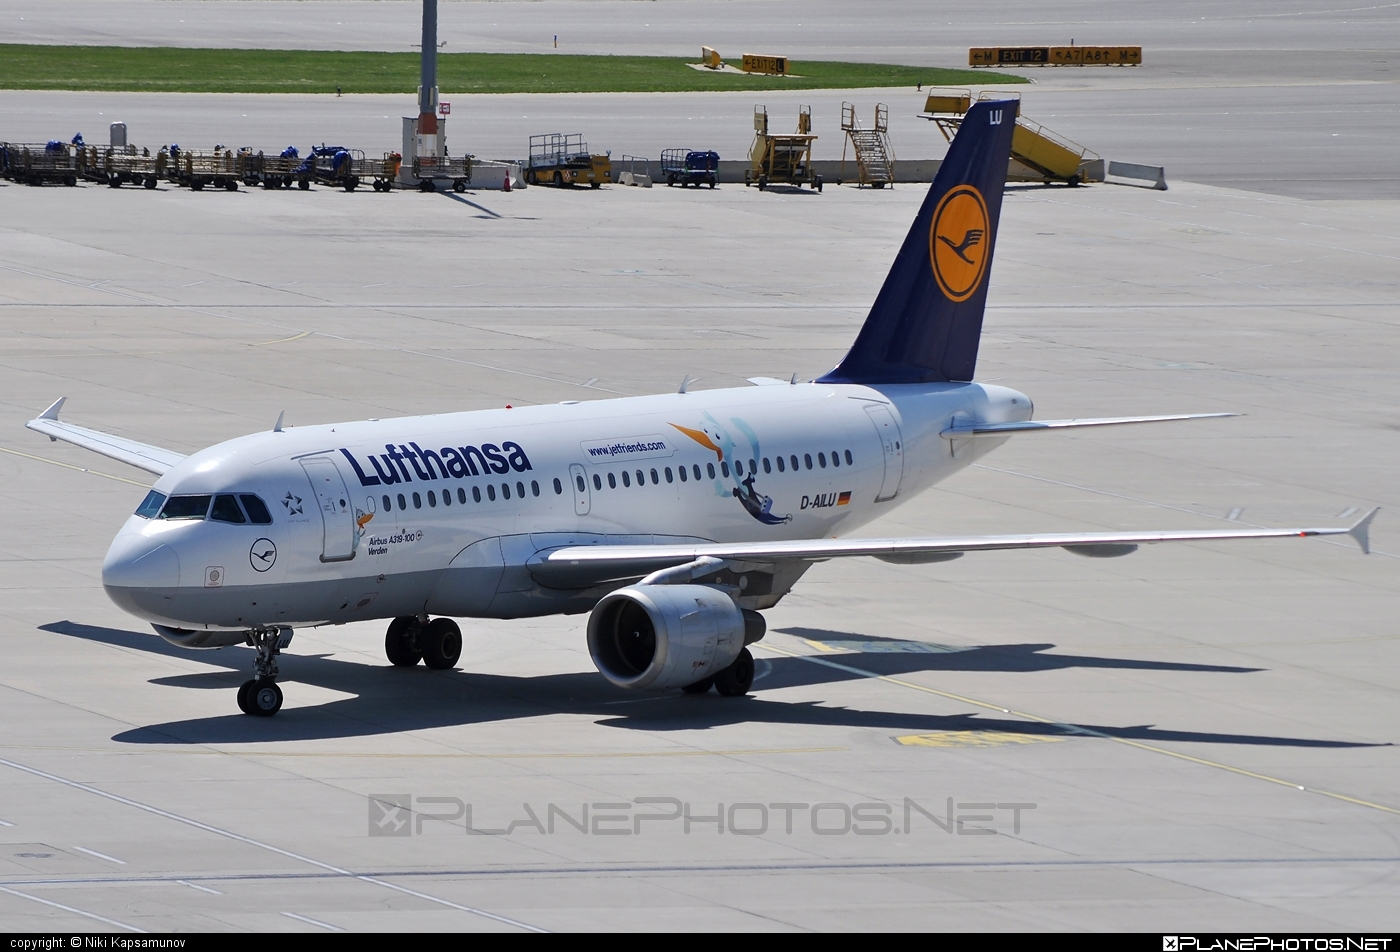 Airbus A319-114 - D-AILU operated by Lufthansa #a319 #a320family #airbus #airbus319 #lufthansa